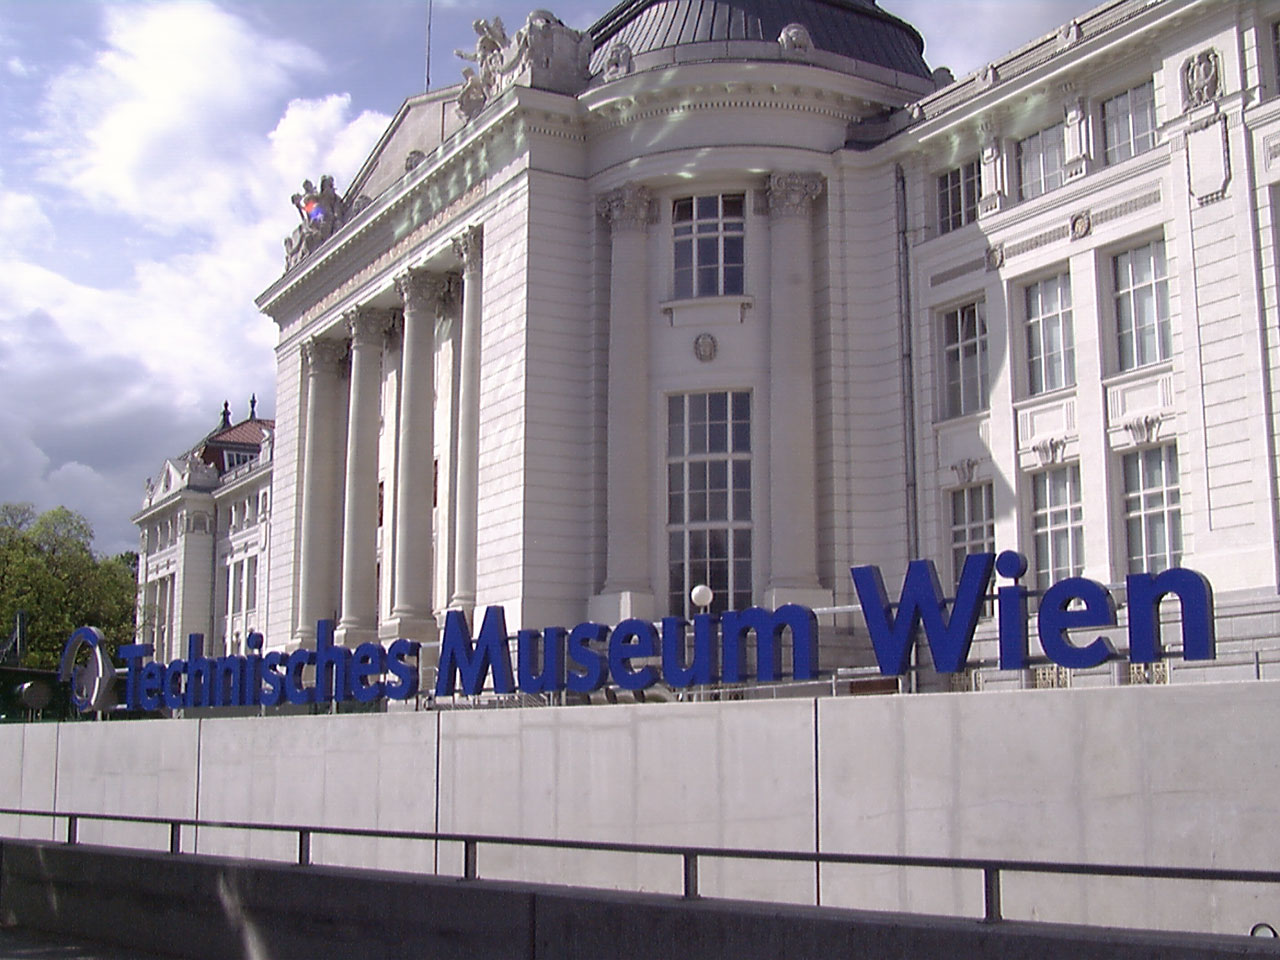 The Technical Museum of Vienna, Vienna, Austria